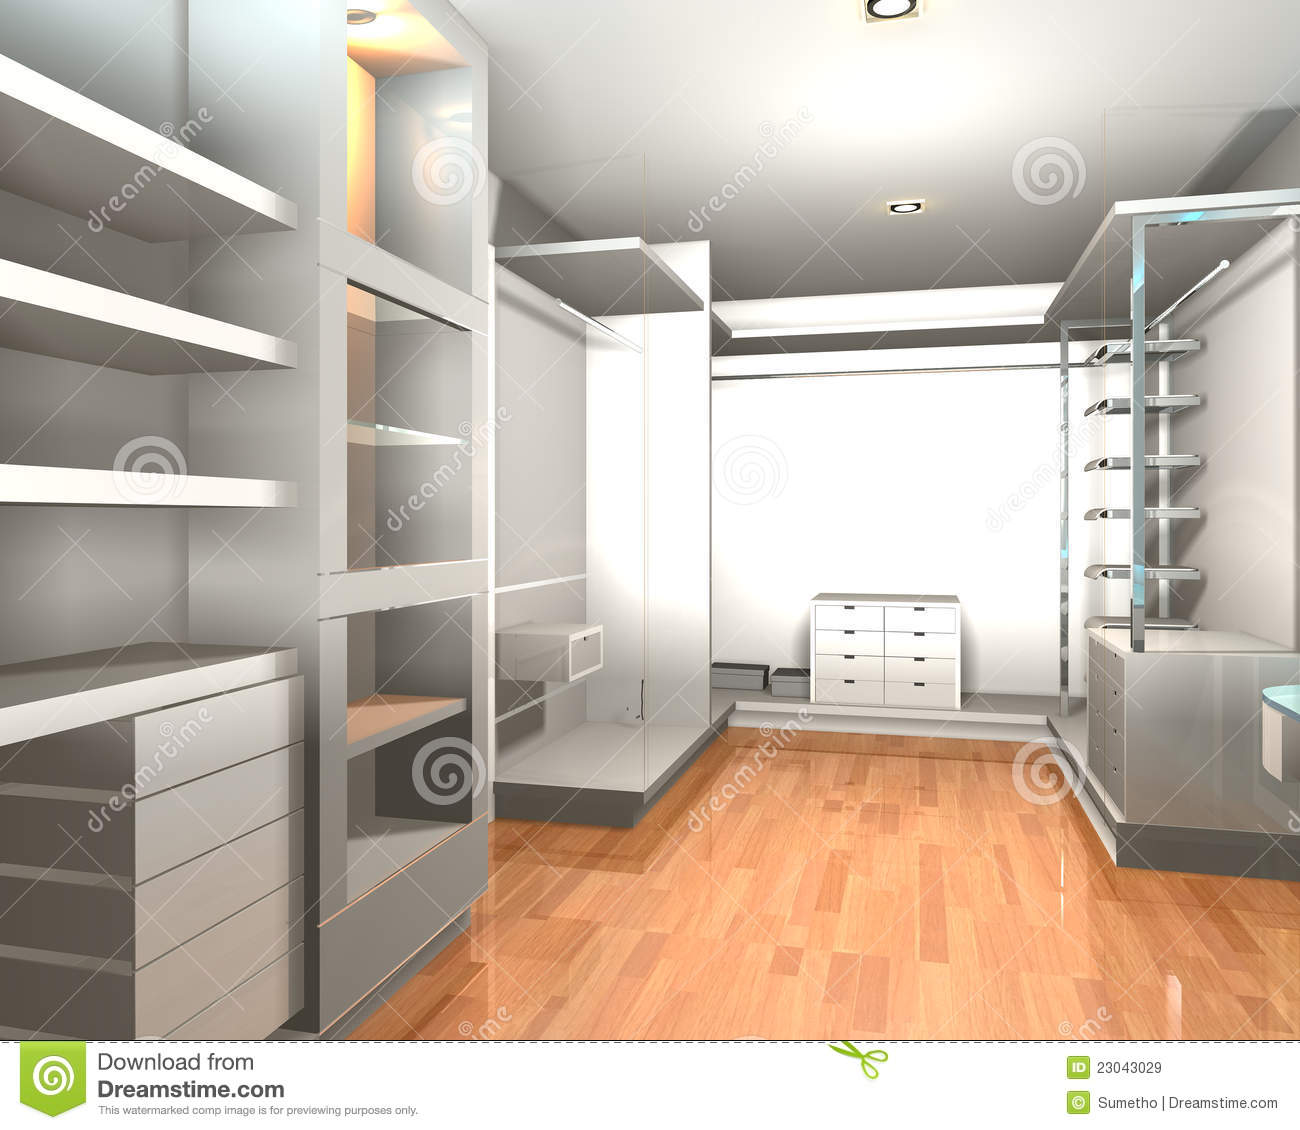 Walk in closet stock illustration. Illustration of clean